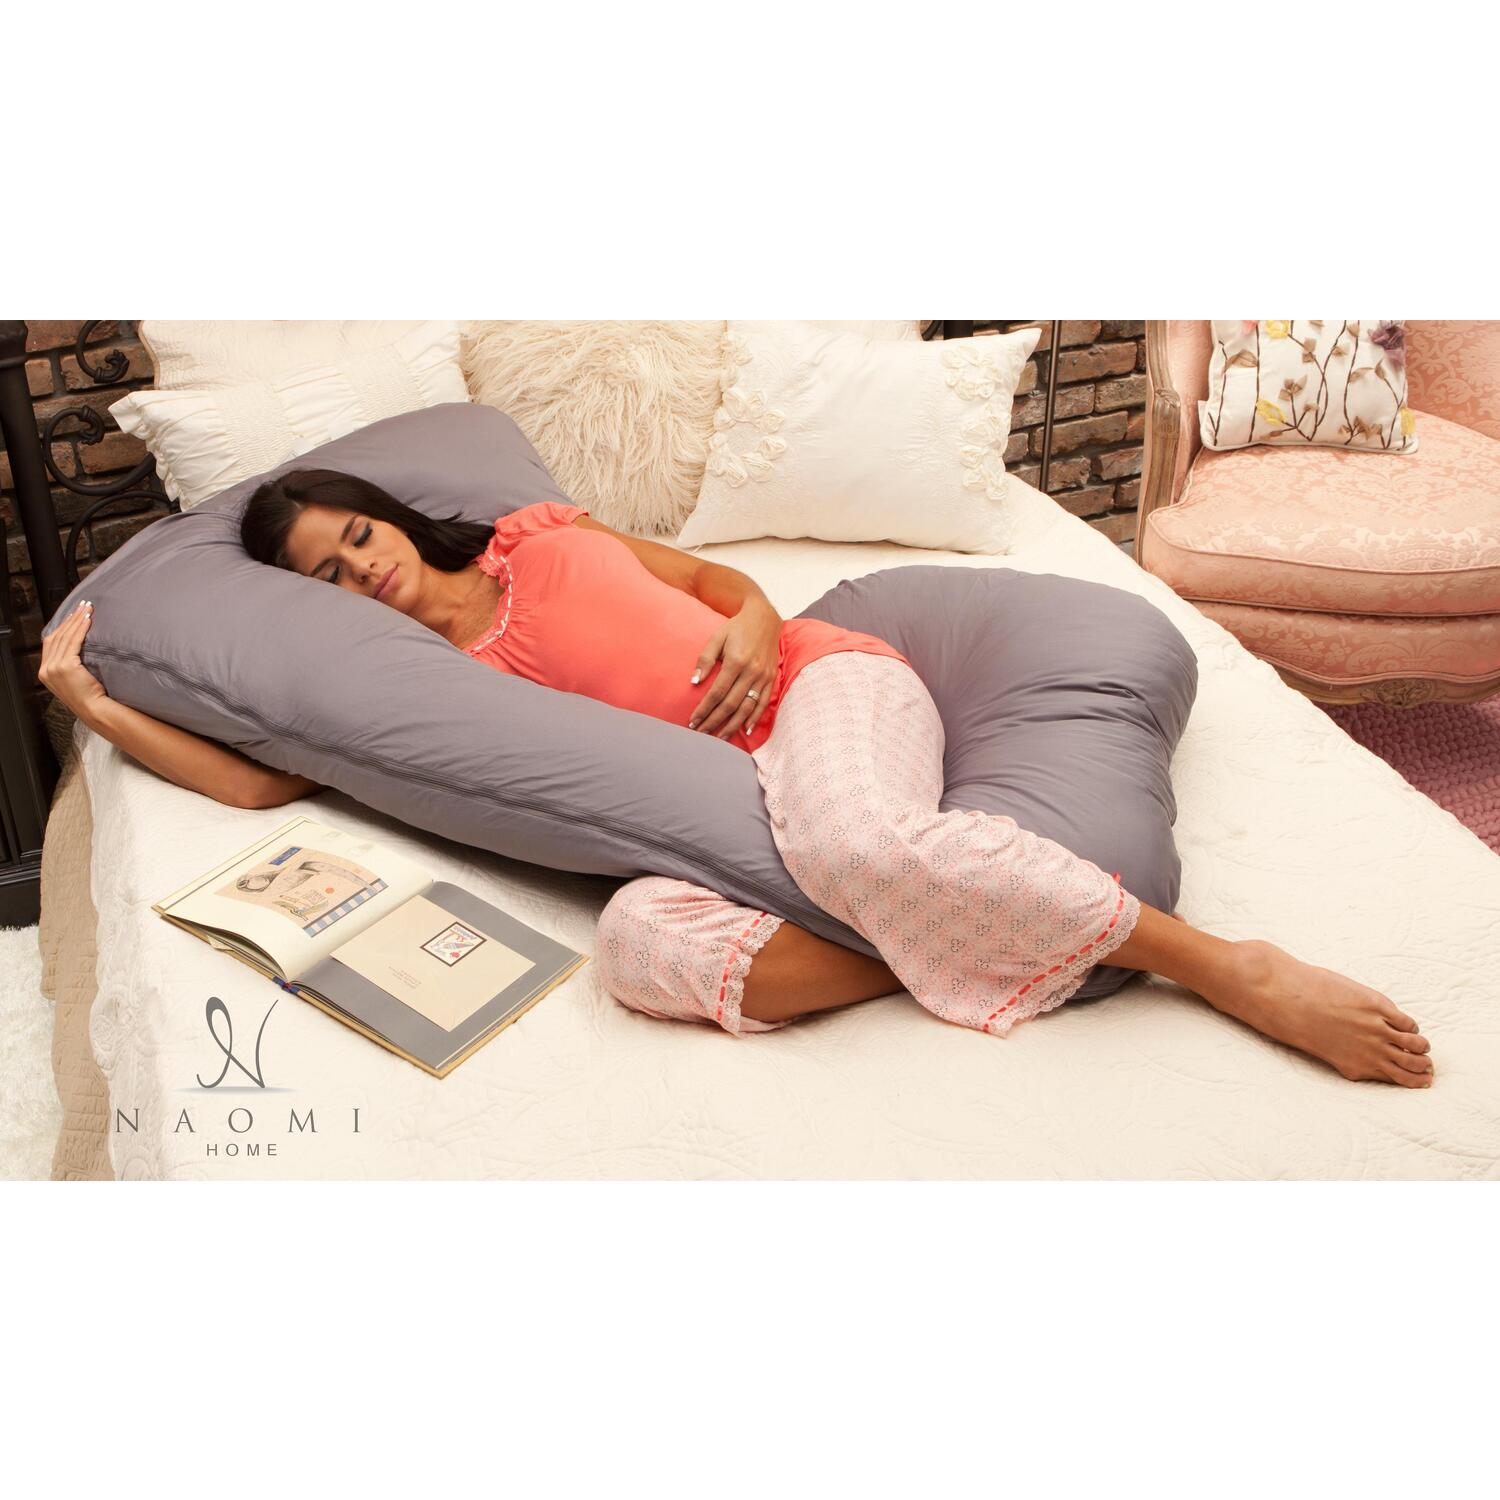 Naomi Home 11207A Naomi Home Cozy Hugger Body Pillow